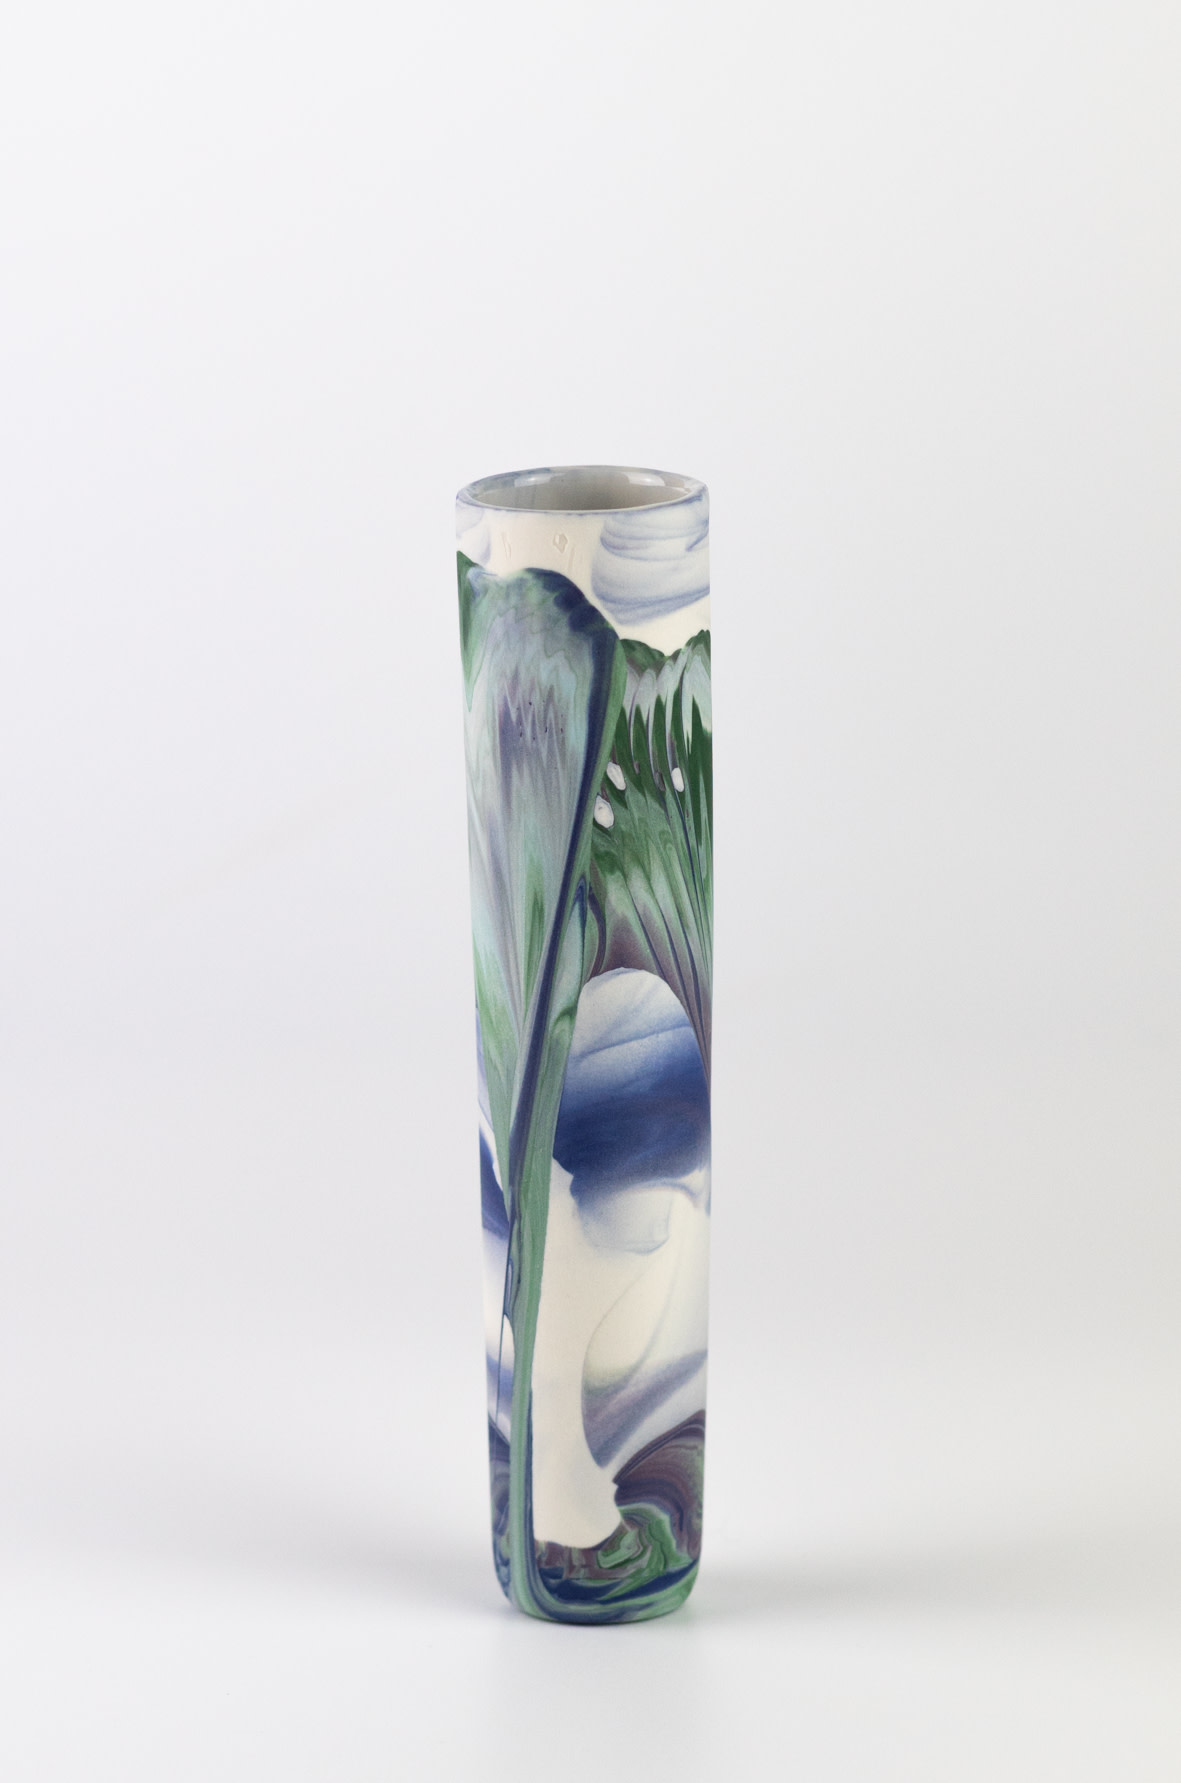 "<span class=""link fancybox-details-link""><a href=""/artists/219-james-pegg/works/6580-james-pegg-boubouki-budvase-2019/"">View Detail Page</a></span><div class=""artist""><strong>James Pegg</strong></div> <div class=""title""><em>Boubouki Budvase</em>, 2019</div> <div class=""medium"">action-cast stained porcelain with glazed interior</div><div class=""price"">£42.00</div><div class=""copyright_line"">OwnArt: £ 4.20 x 10 months, 0% APR</div>"